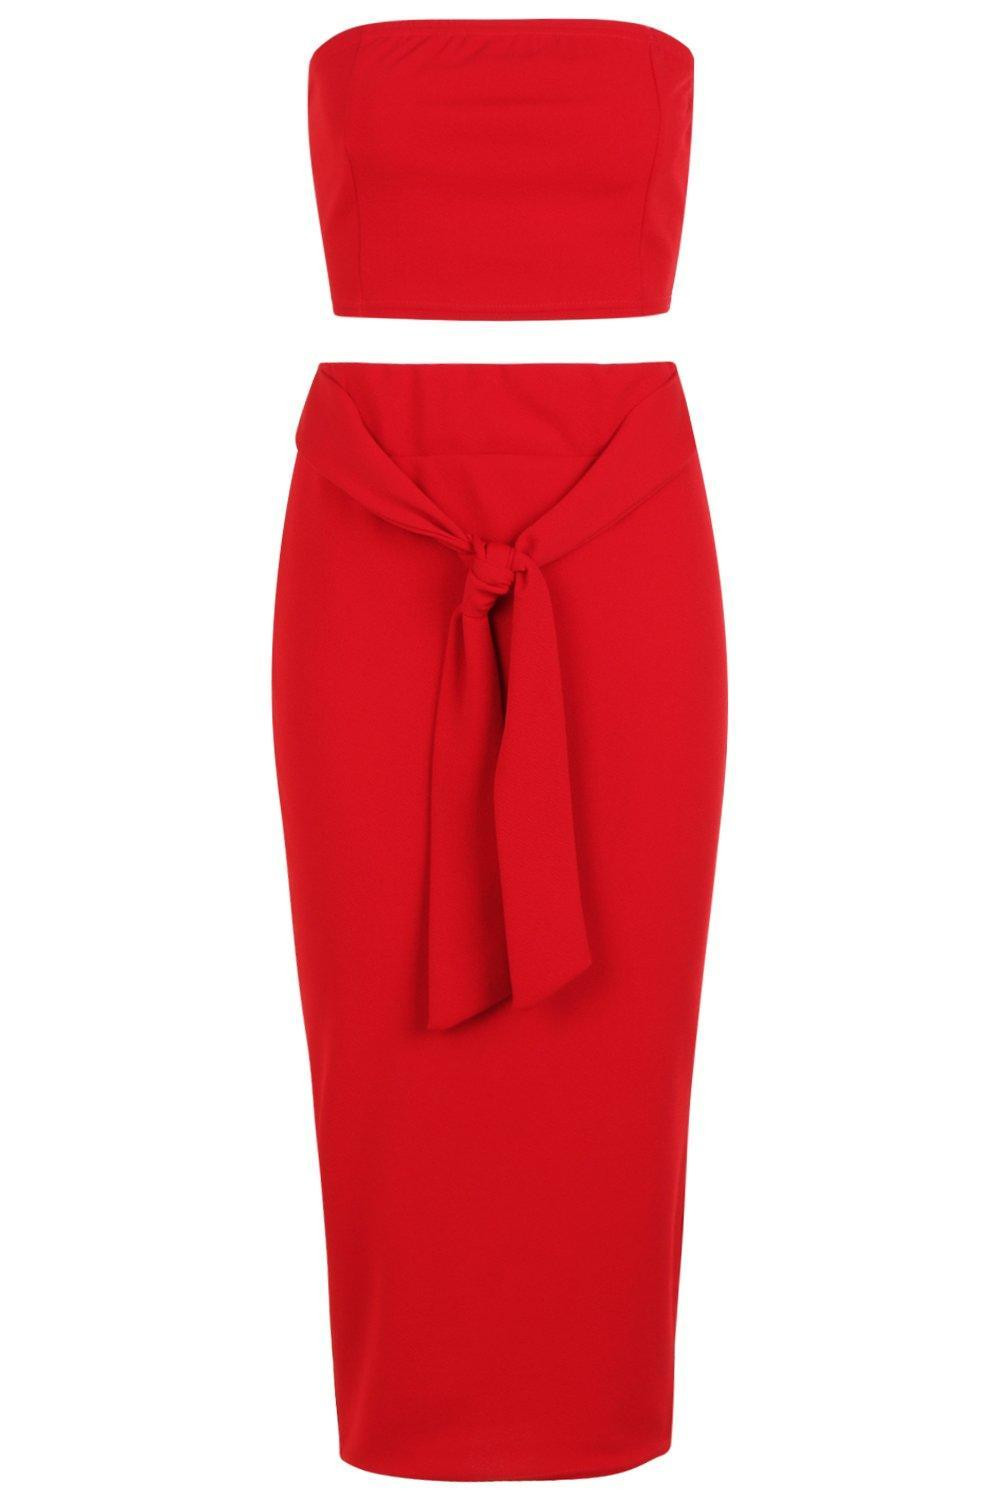 2b258a9fb4 ... Red Bandeau Tie Detail Midi Skirt Co-ord - Lyst. Visit Boohoo. Tap to  visit site